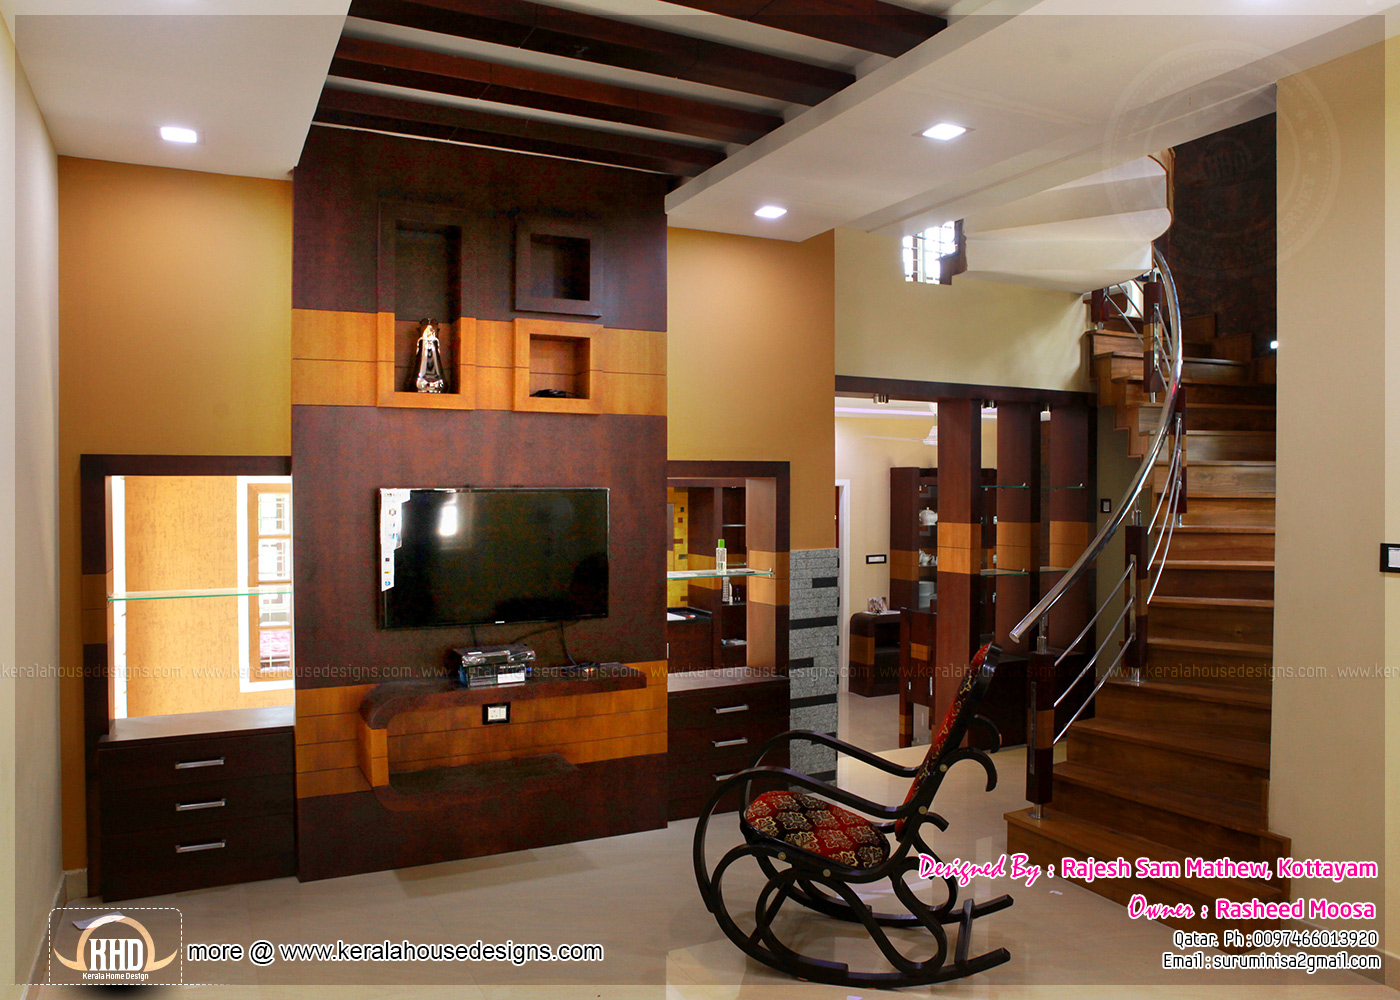 Kerala interior design with photos kerala home design for Interior designs in home